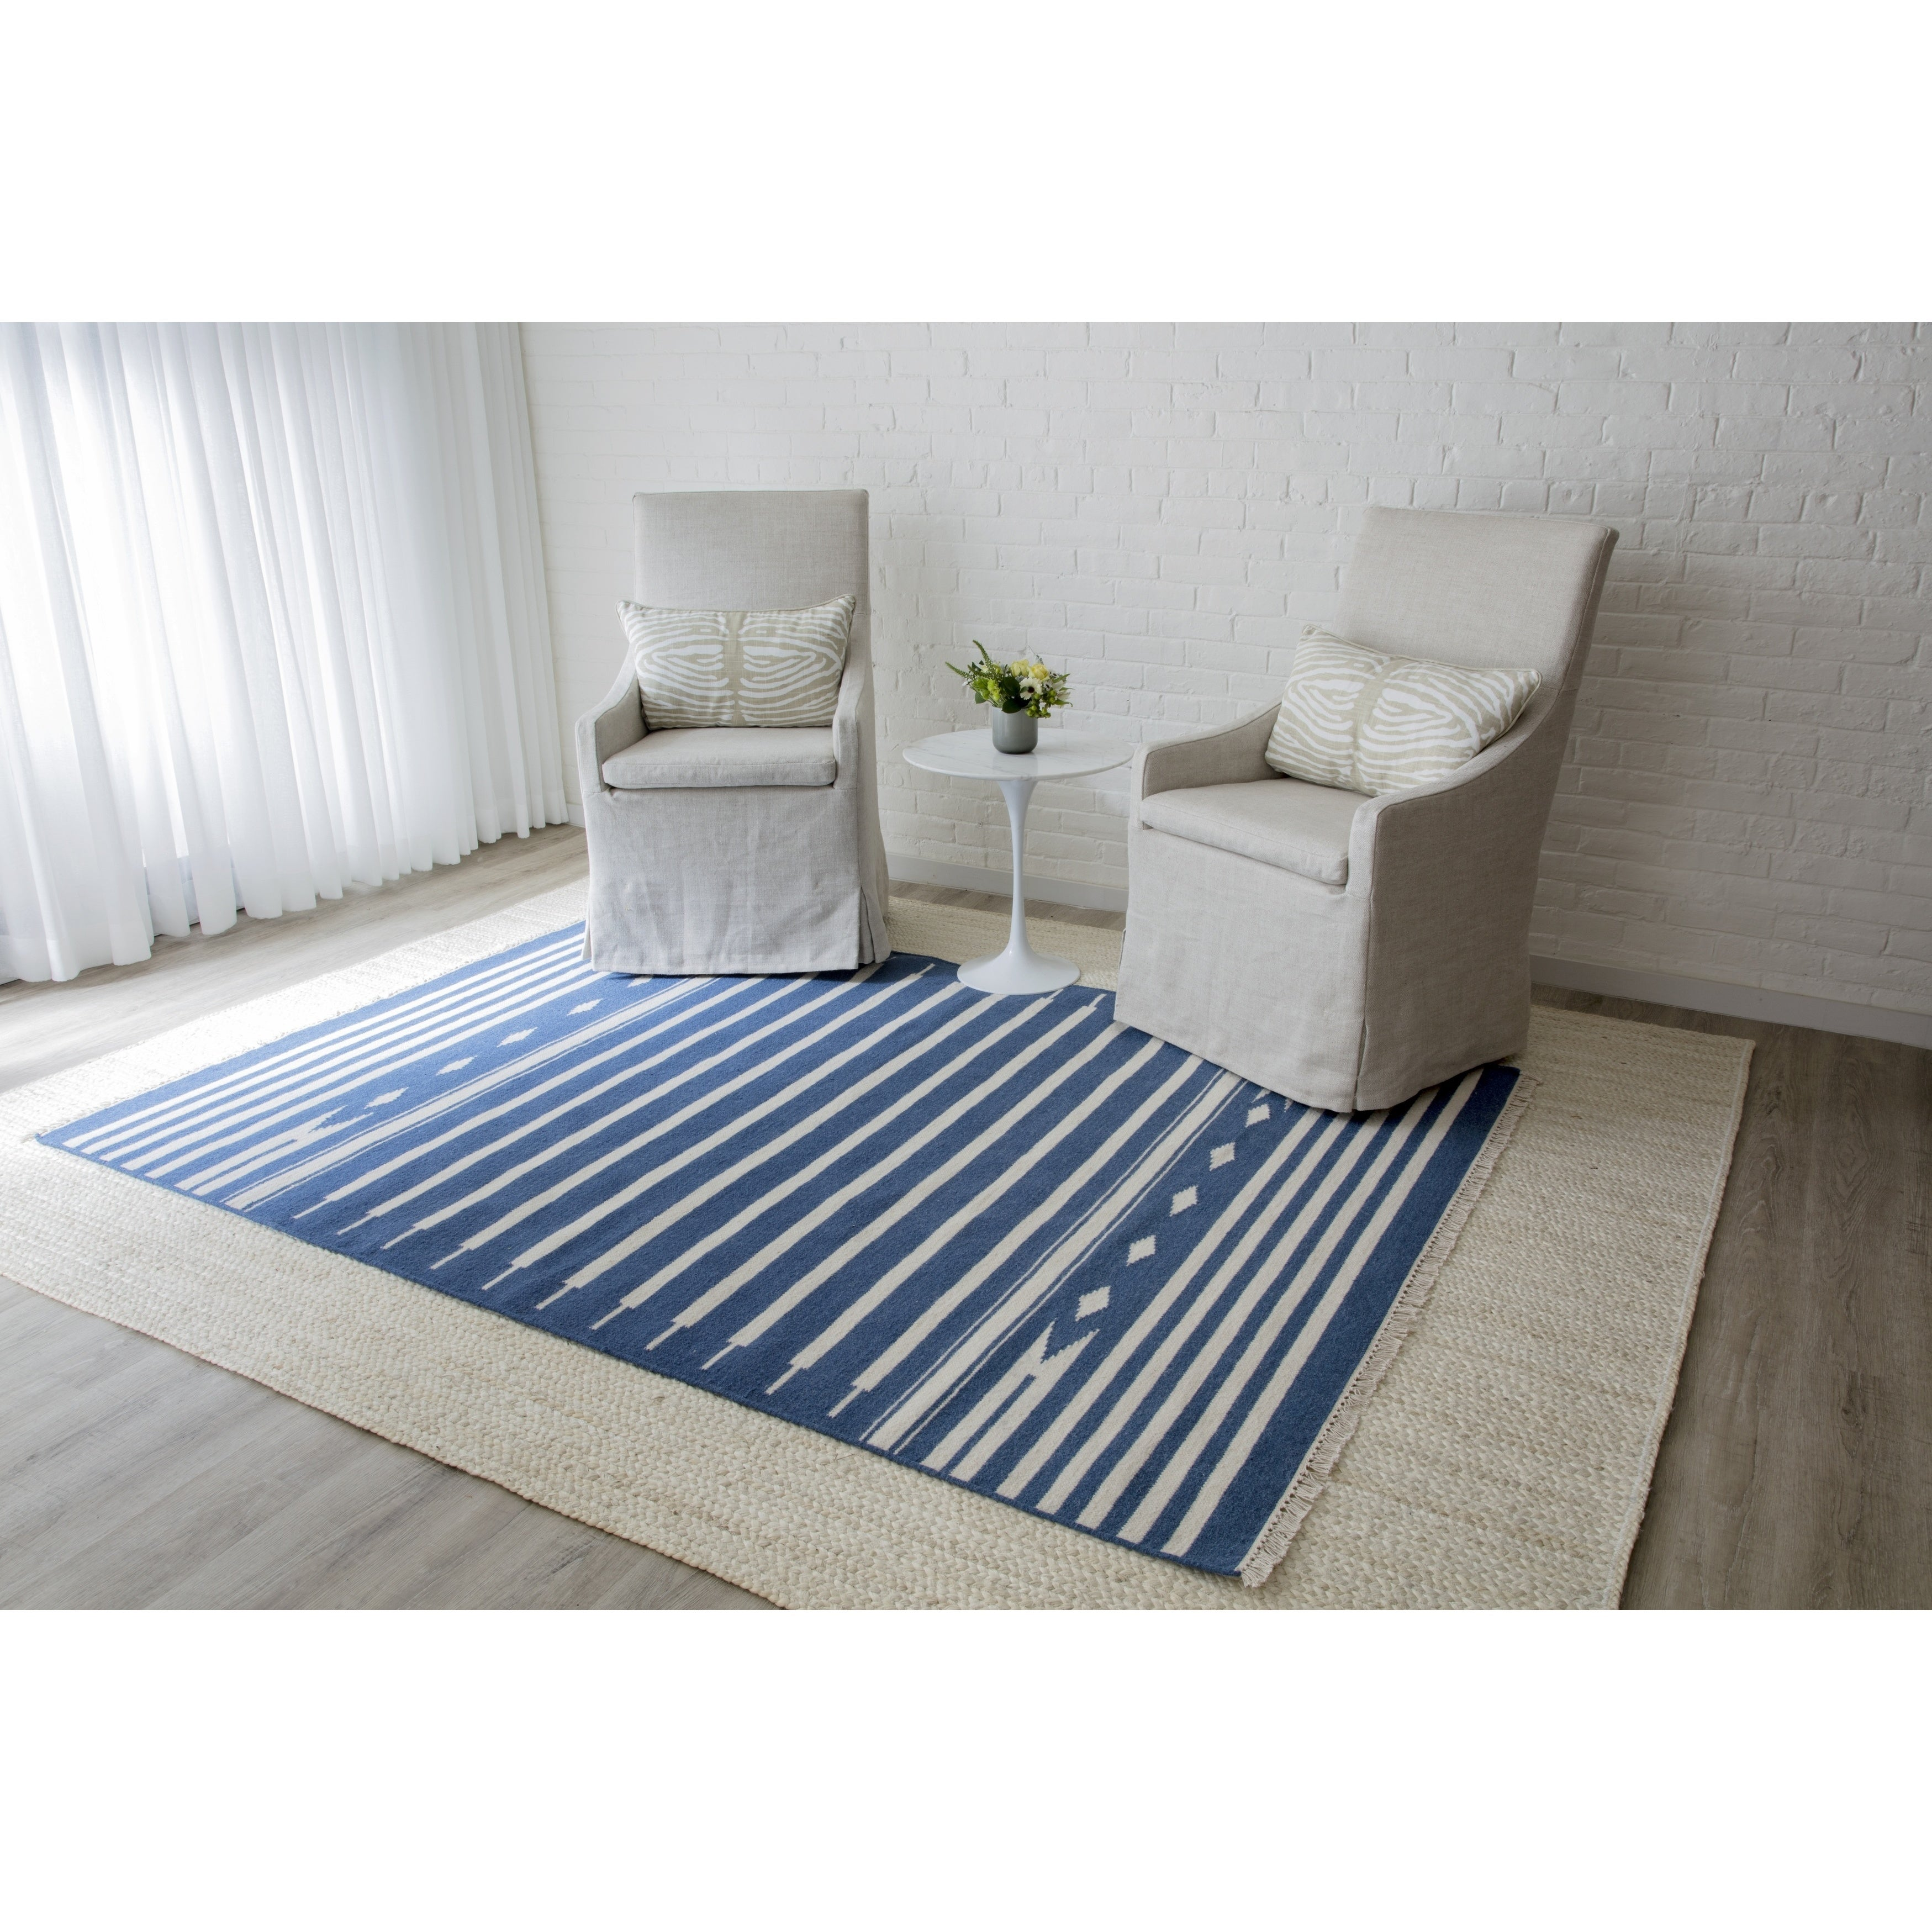 Erin Gates by Momeni Thompson Billings Hand-woven Wool Area Rug (Grey - 76 x 96)